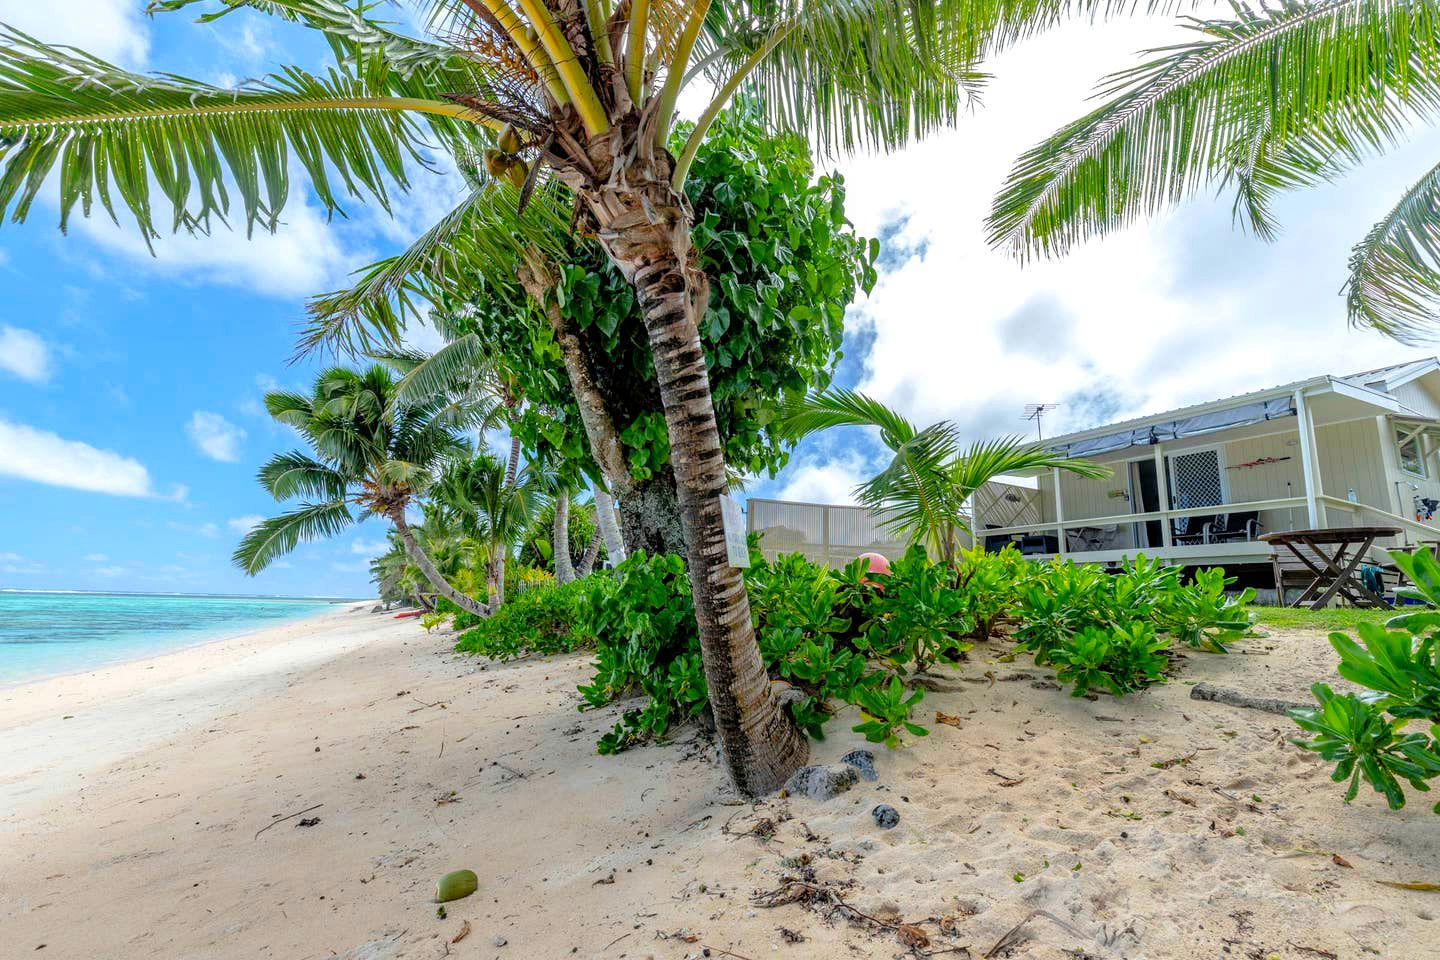 Beach Houses (Avarua, Rarotonga, Cook Islands)